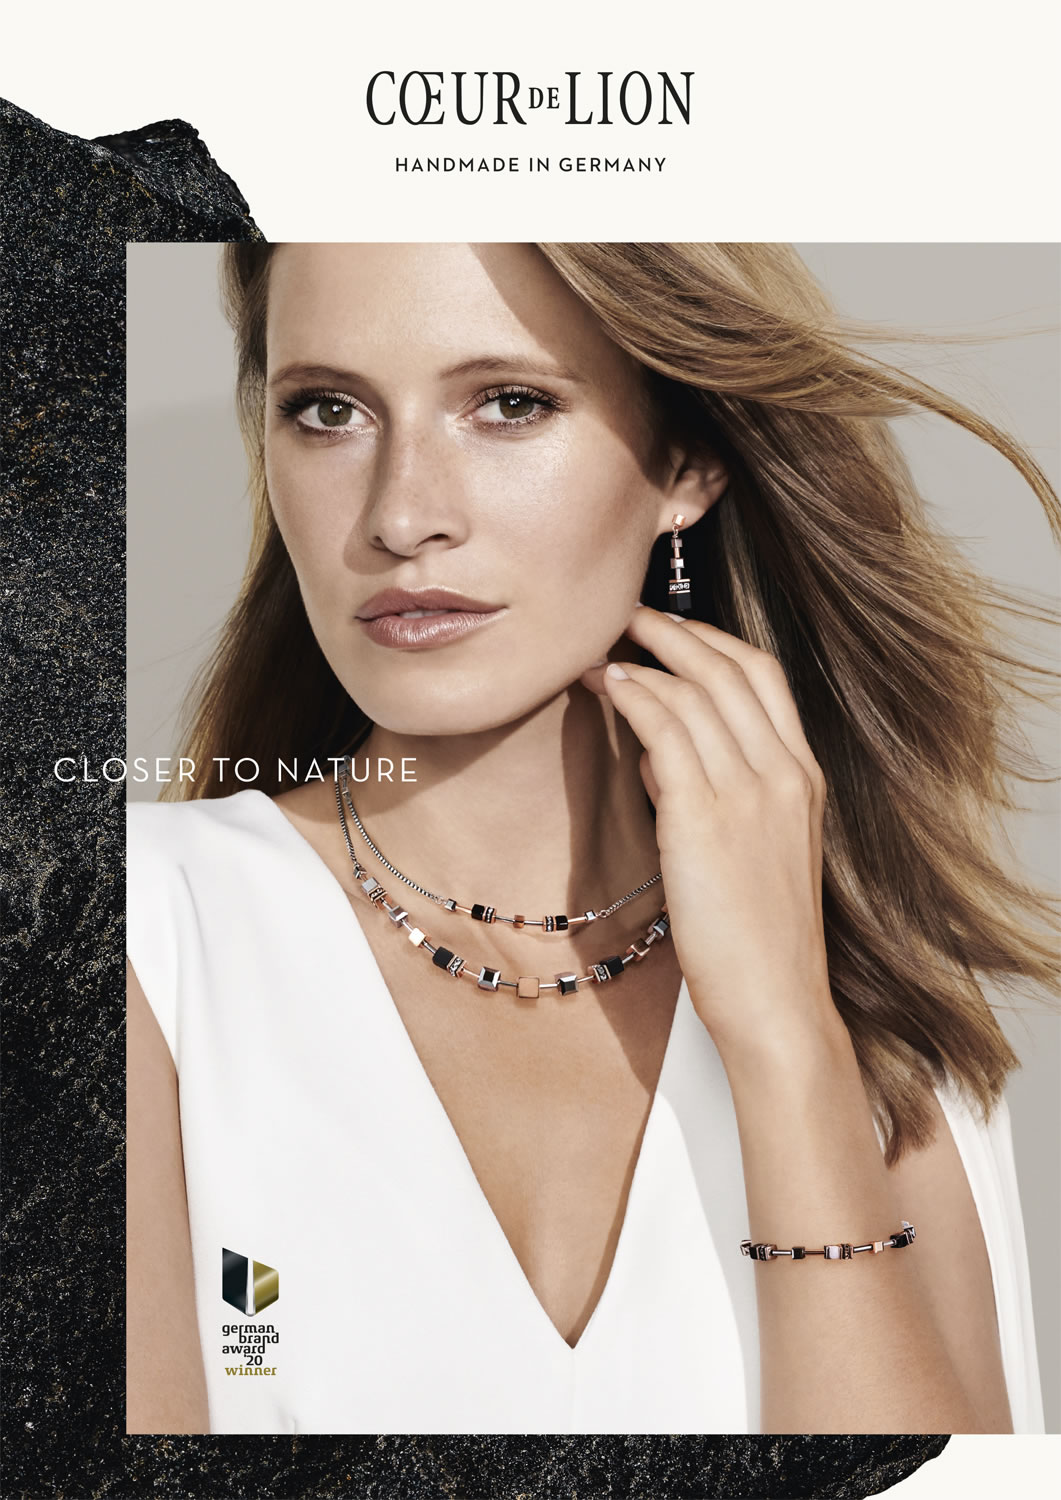 Jewellery - Necklaces Earrings Bracelets - Weybridge Jewellers - COEUR DE LION Autumn Winter Season 2020